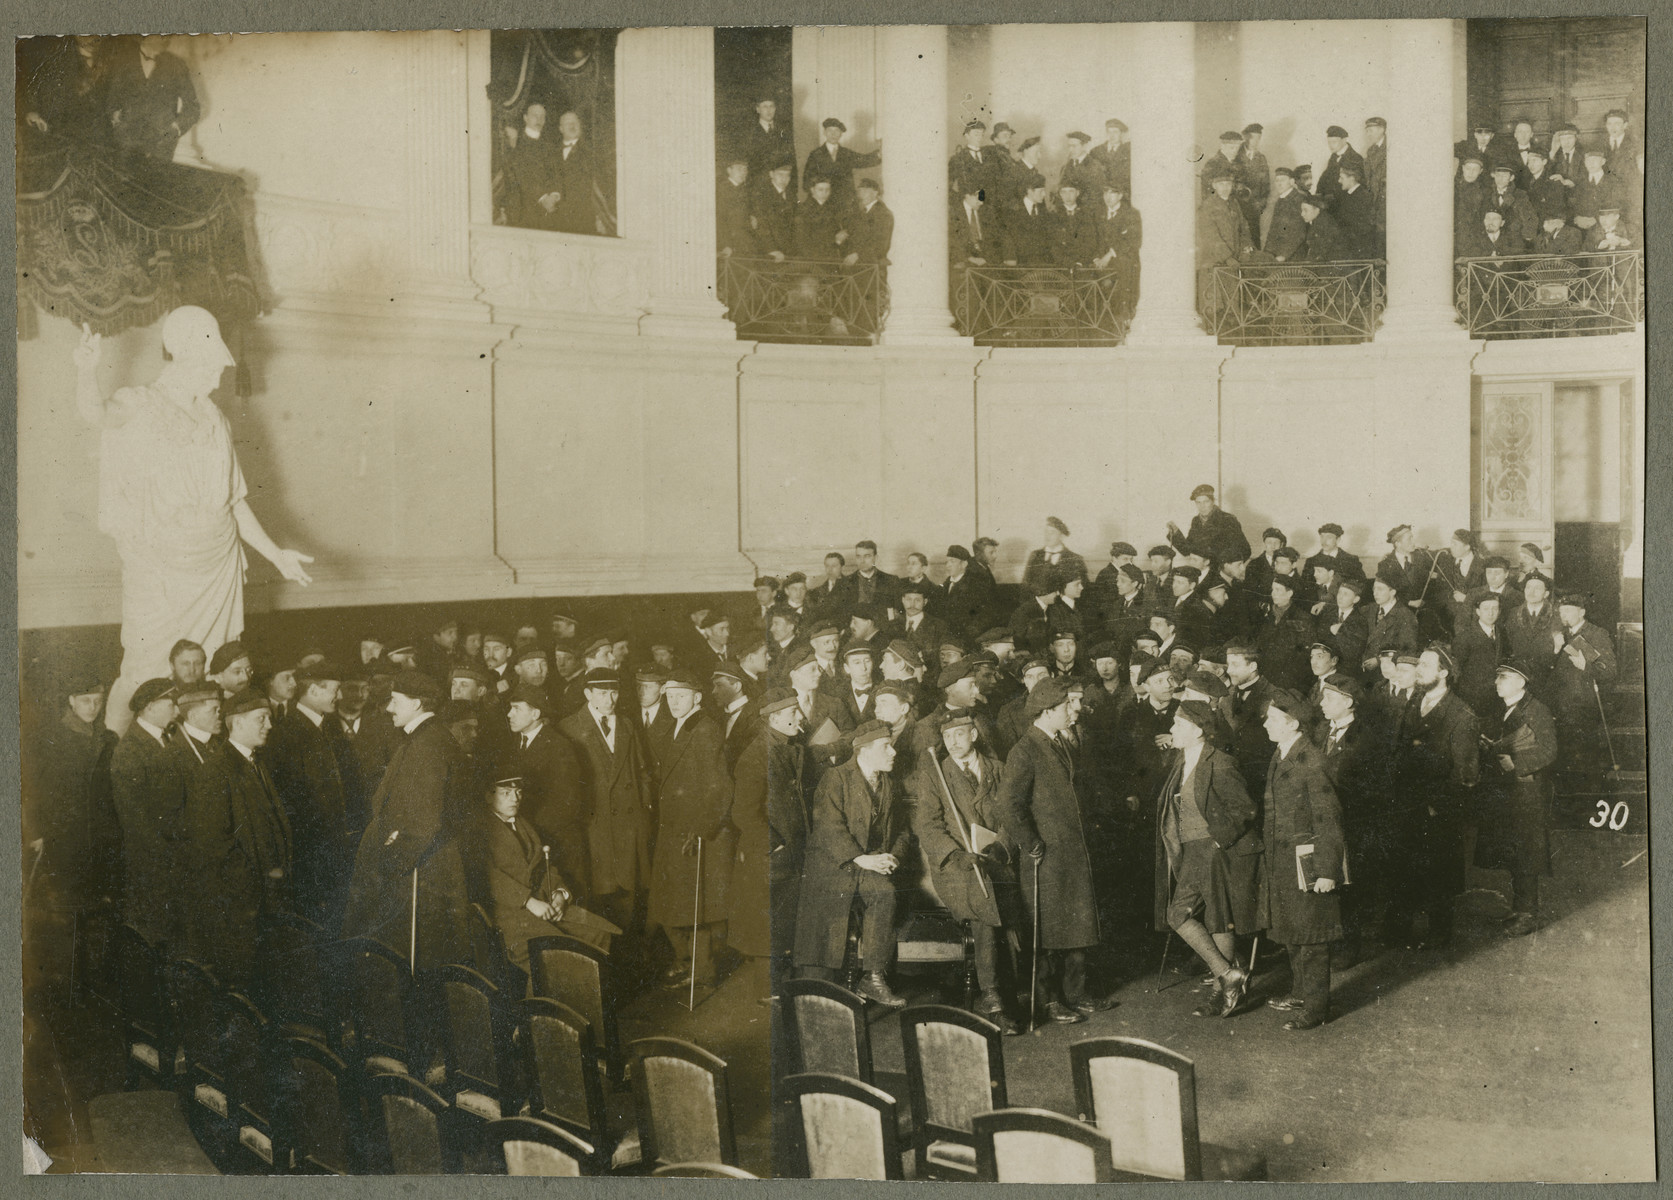 Students at the von Bissing University in Gent gather  in the central auditorium of the Aula on Vorderstraat.